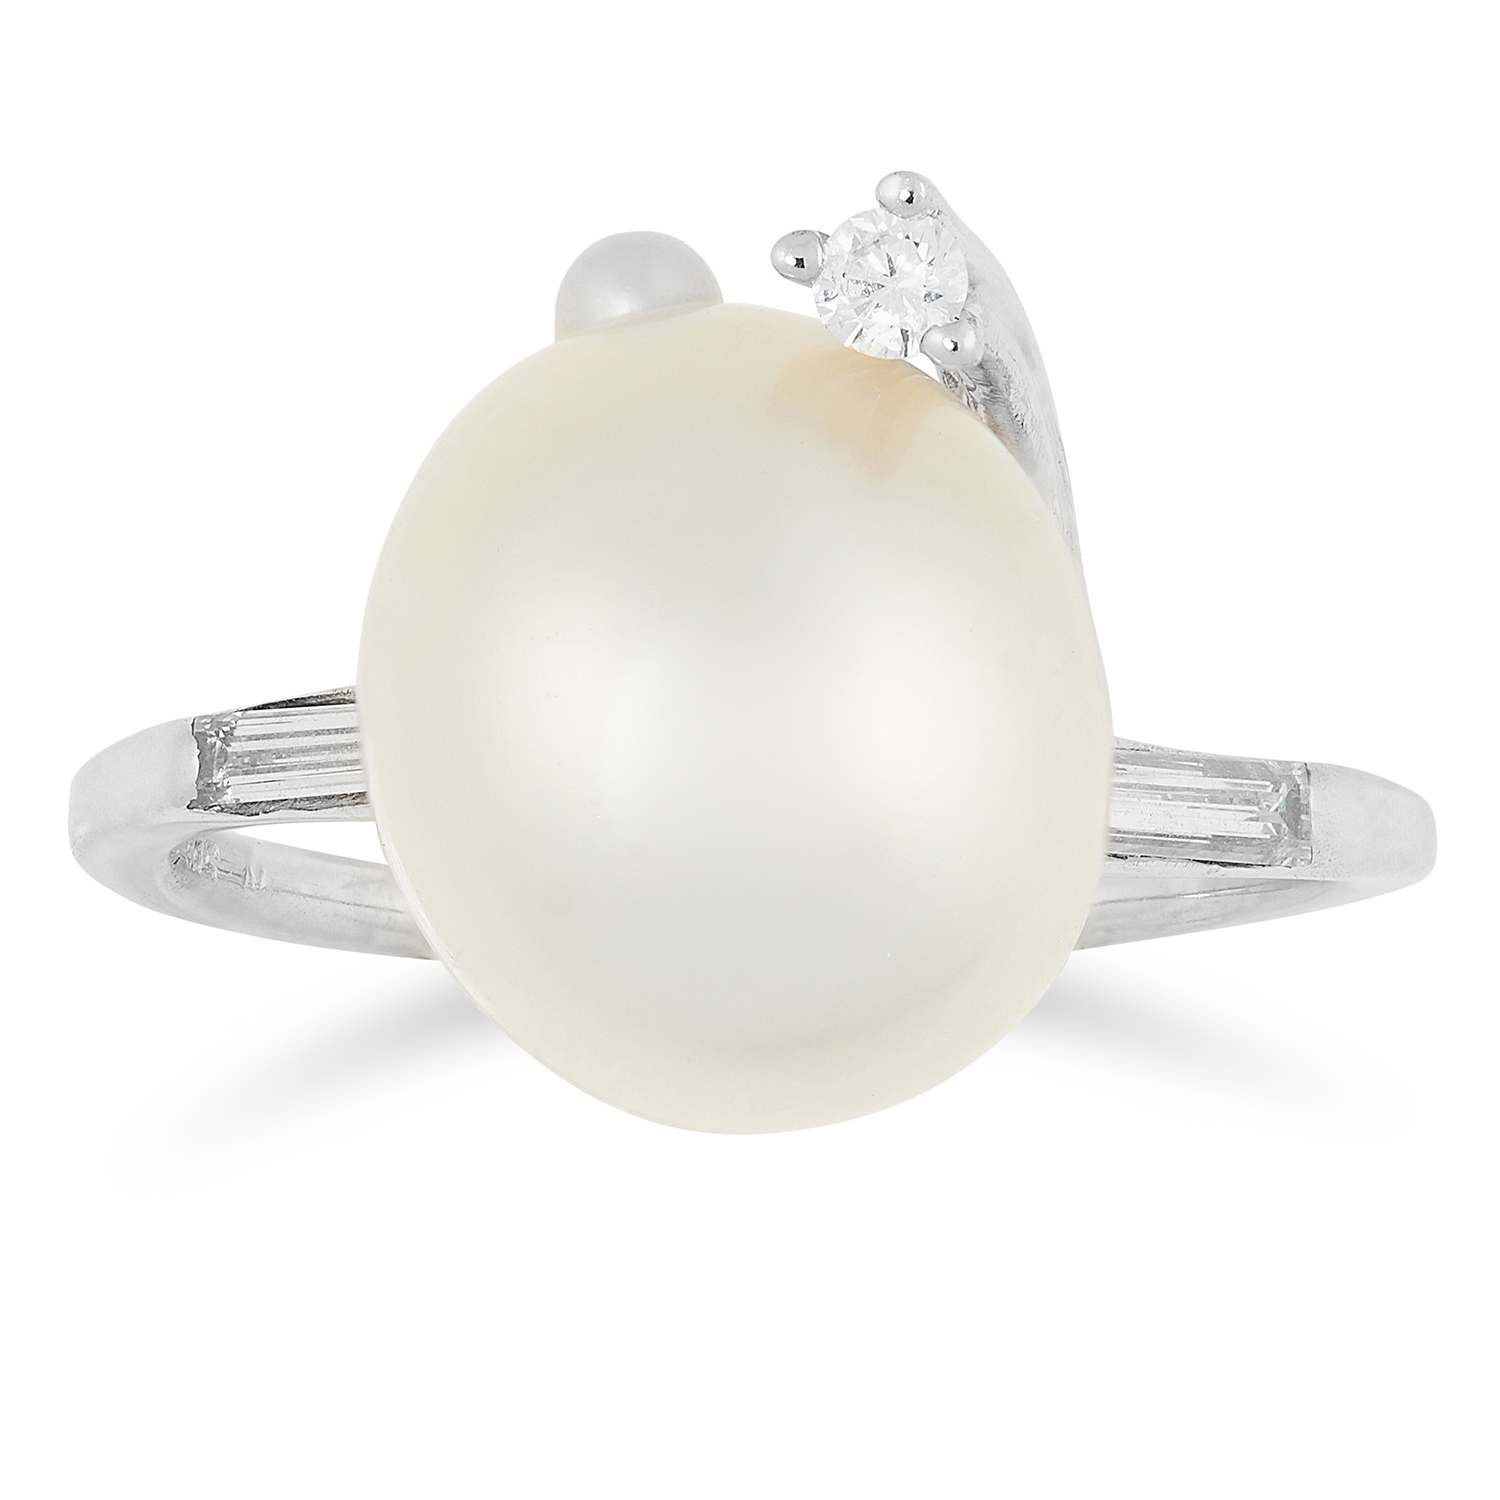 PEARL AND DIAMOND DRESS RING set with a pearl and round and baguette cut diamonds, size O / 7, 4.4g.